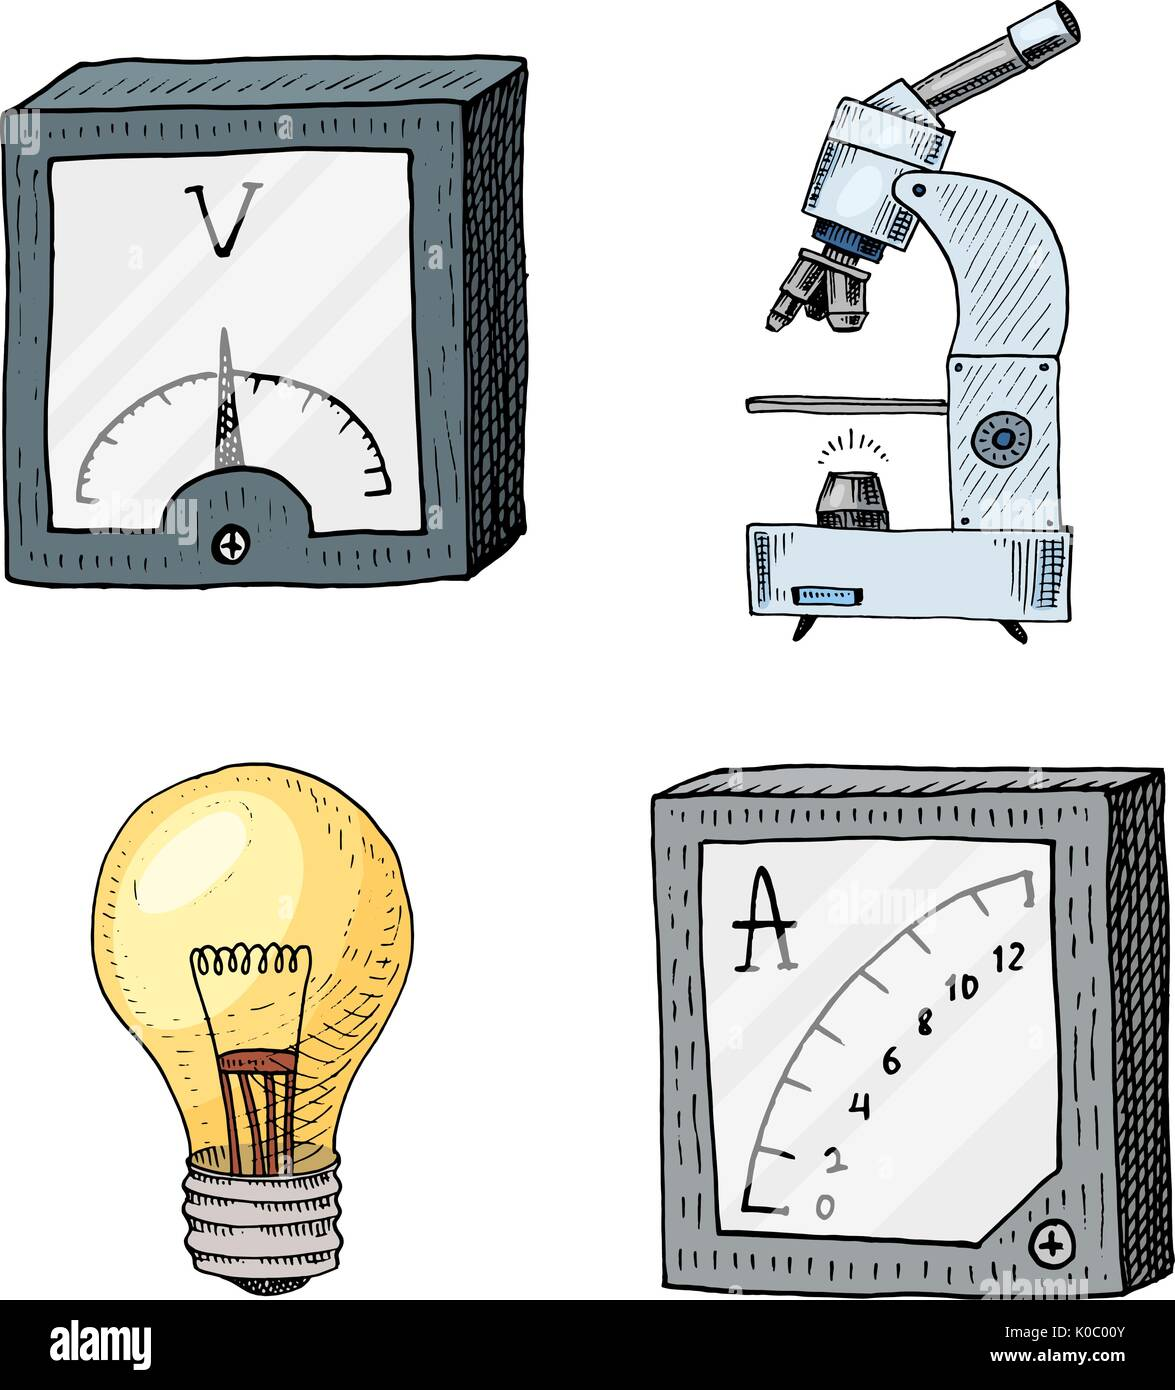 ammeter or voltmeter, microscope and light bulb. engraved hand drawn ...